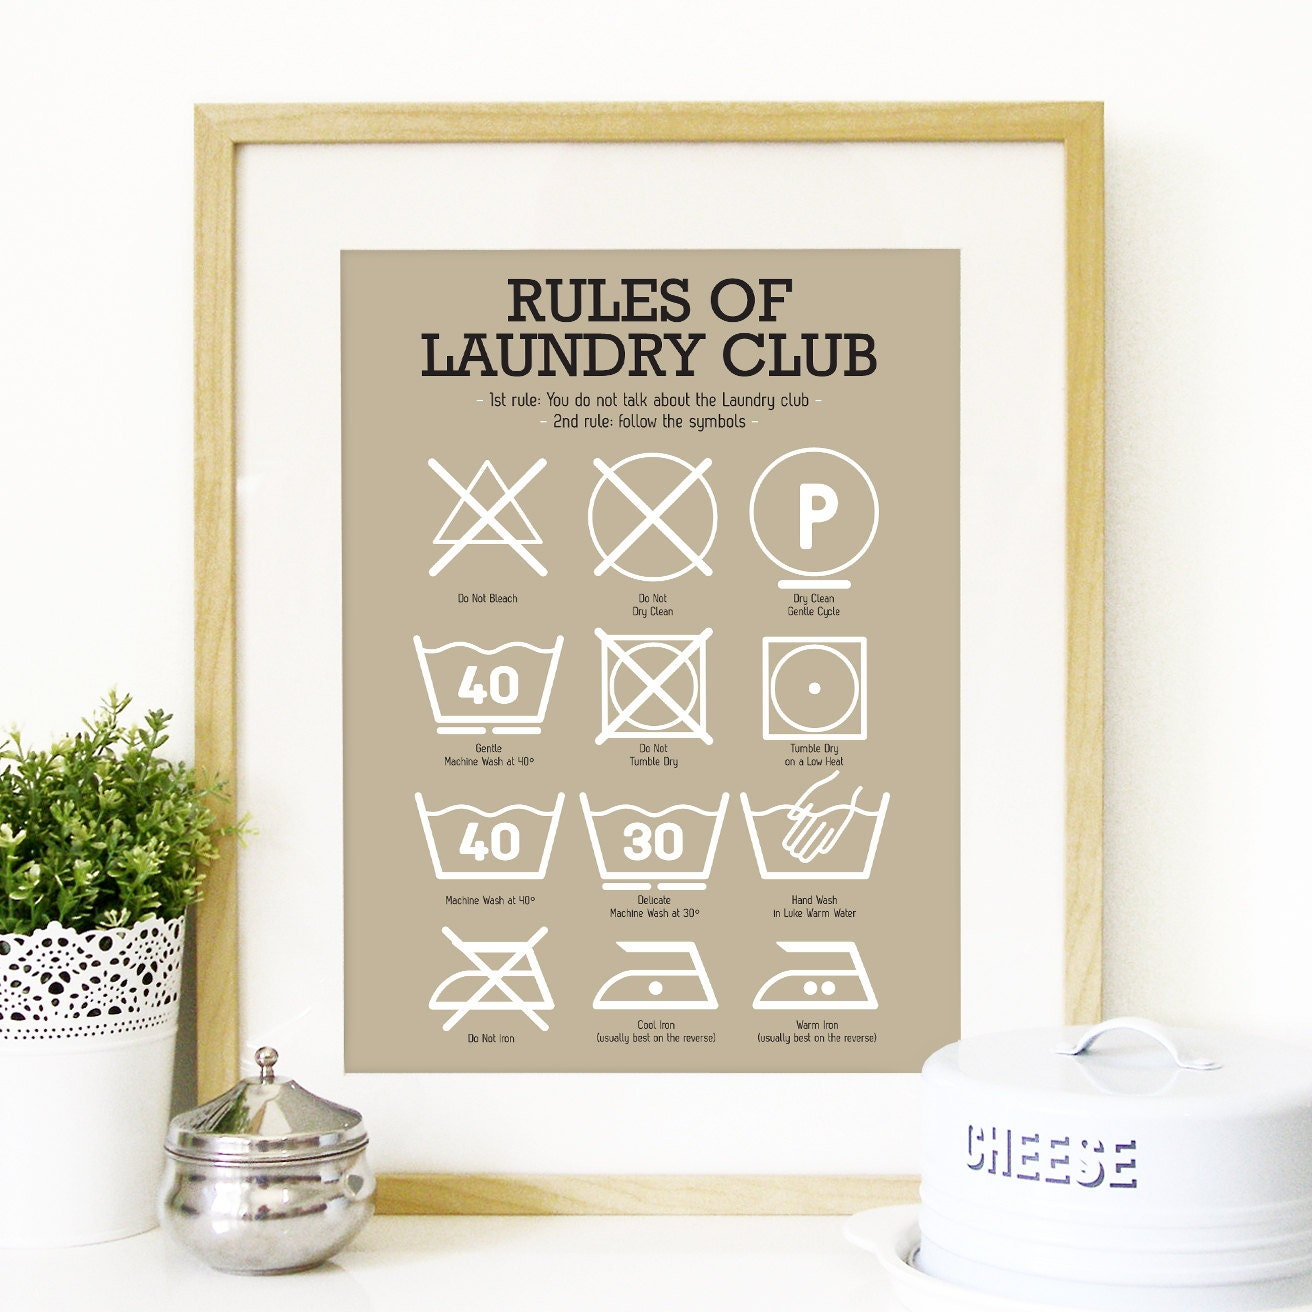 Laundry Symbols Wall Art Poster Kitchen Laundry Club Art Laundry Symbols Mid Century